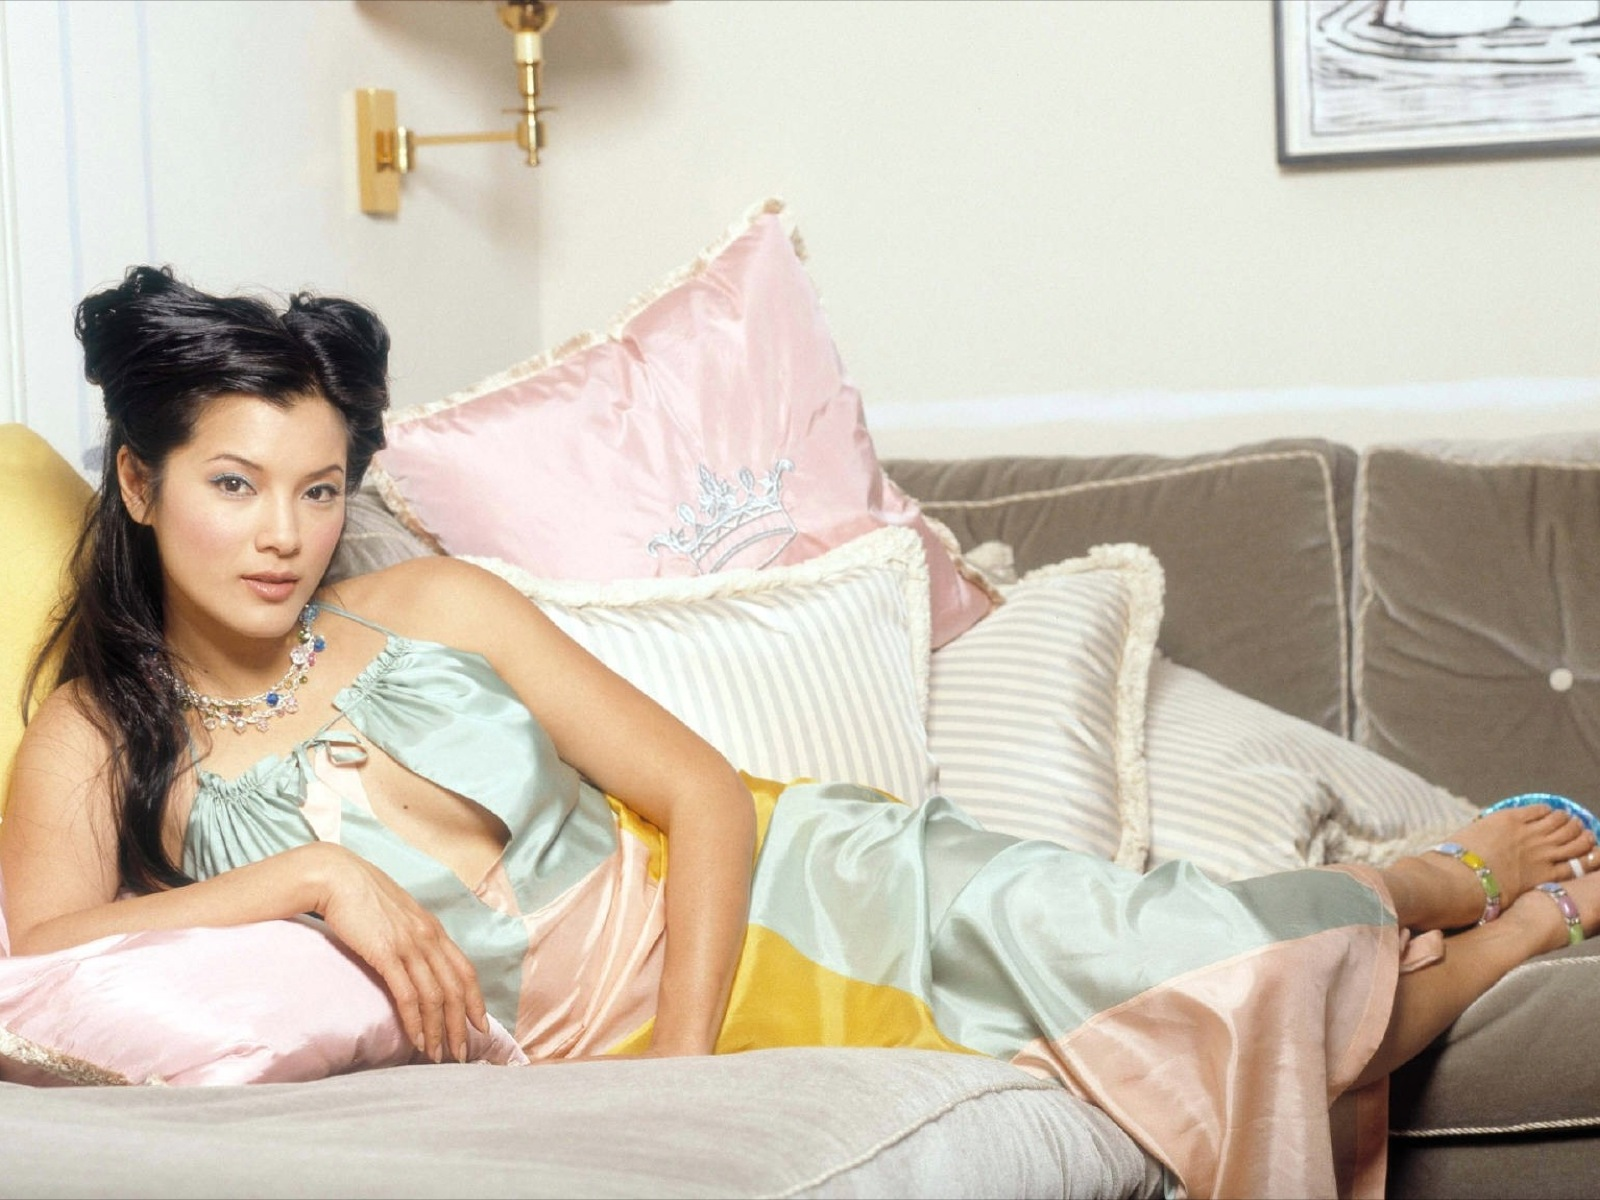 Kelly Hu As she got older